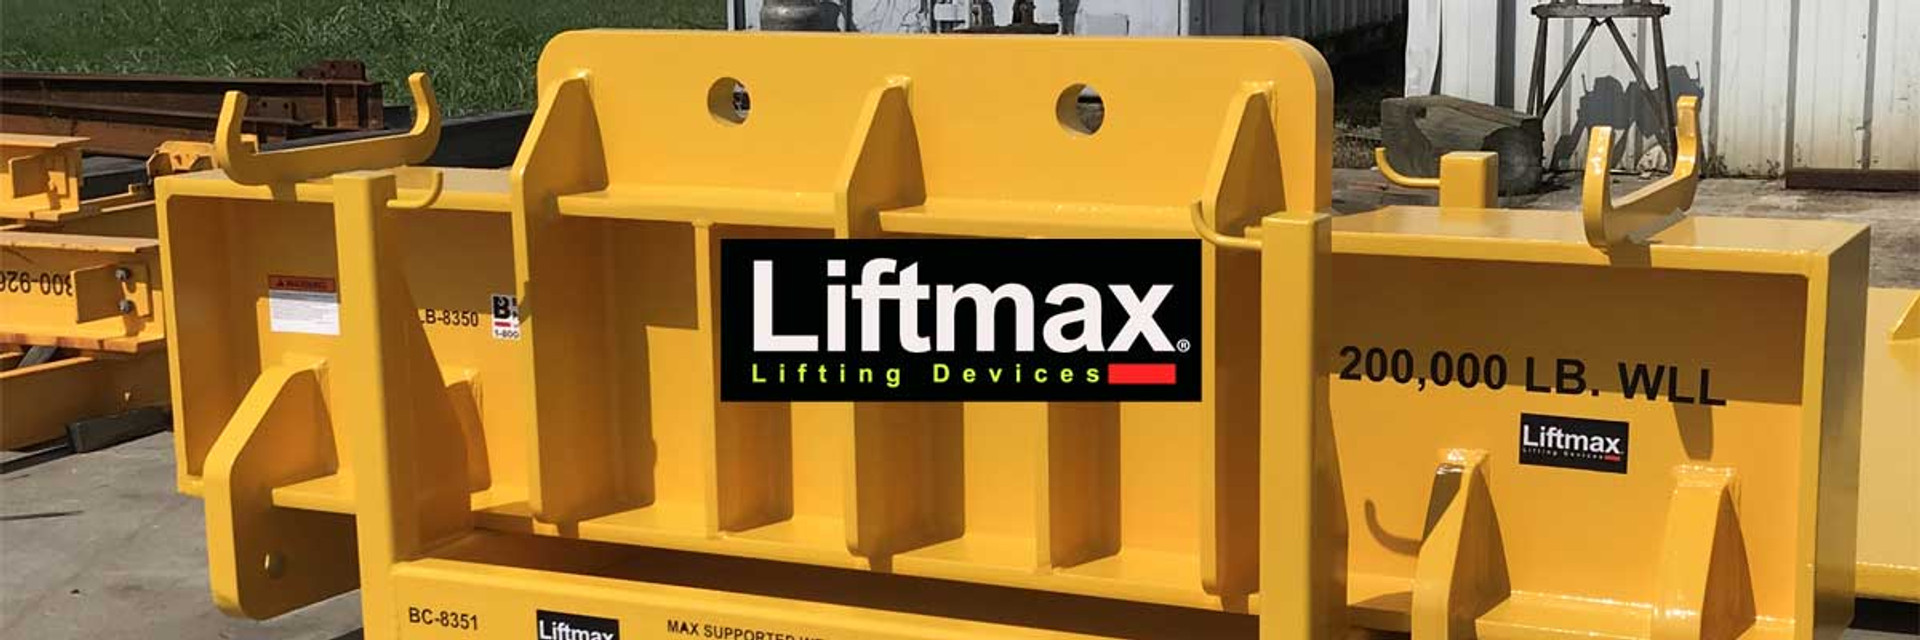 Liftmax Lifting Devices